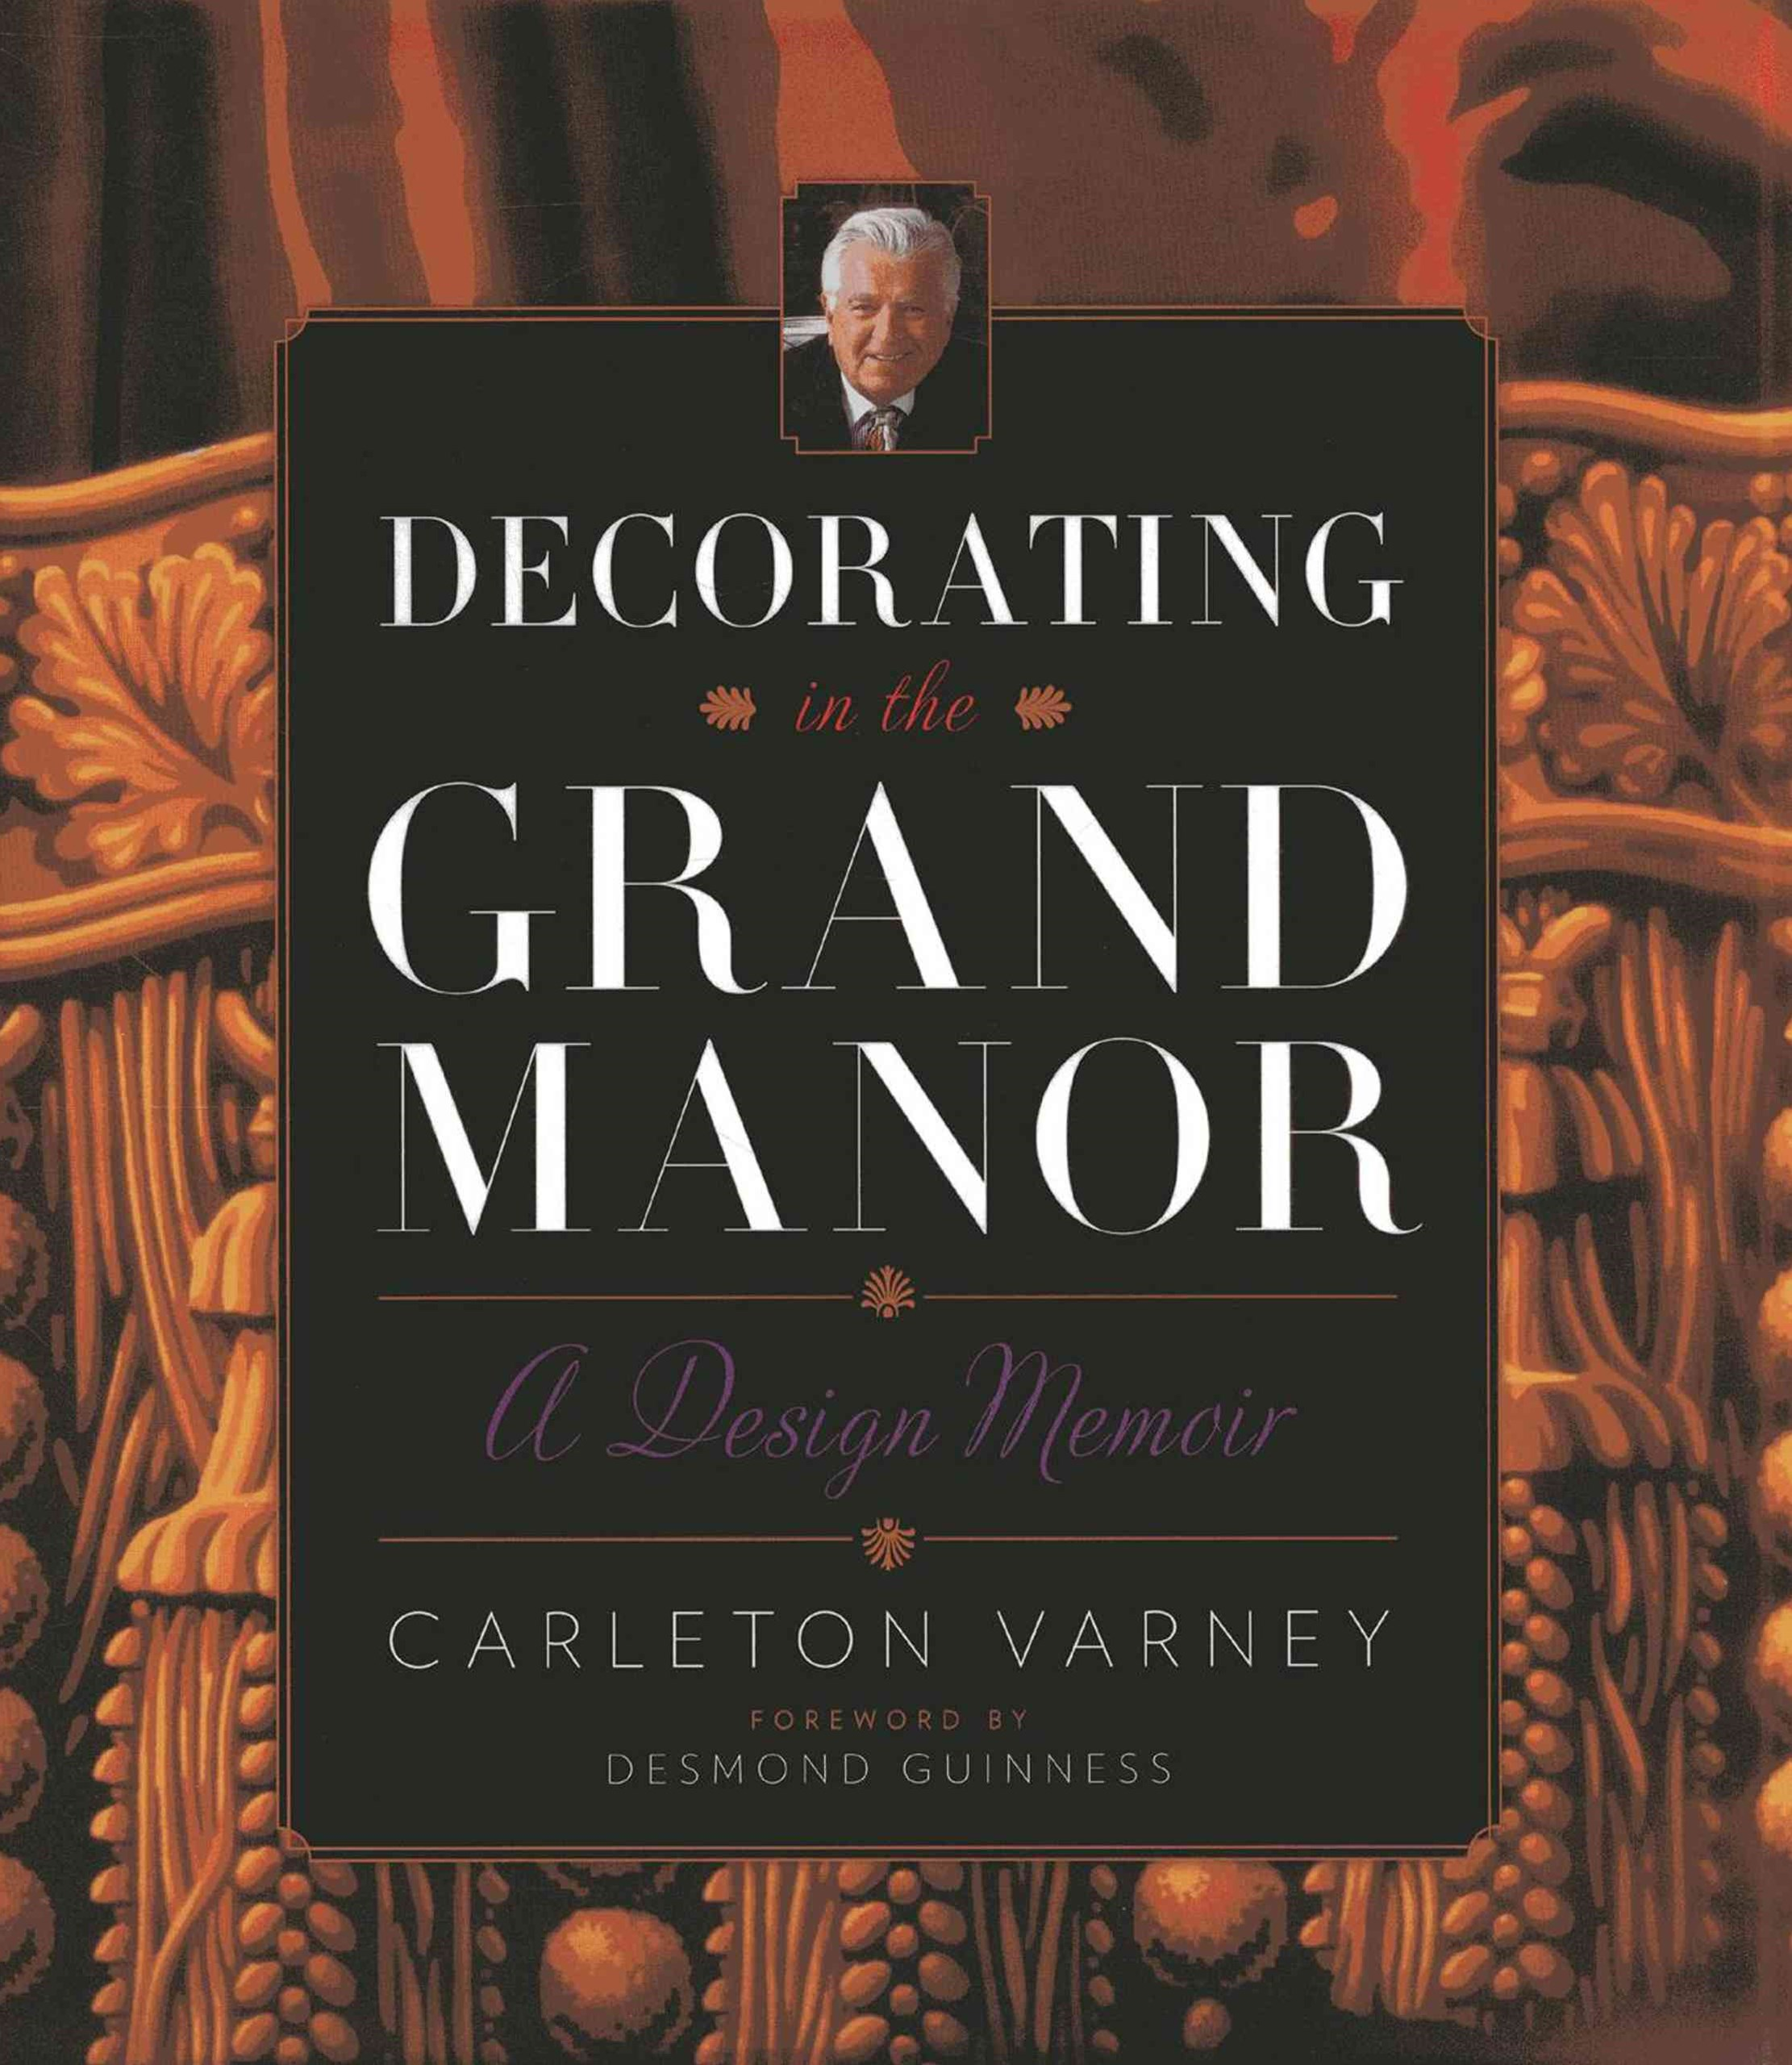 Decorating in the Grand Manor: A Design Memoir